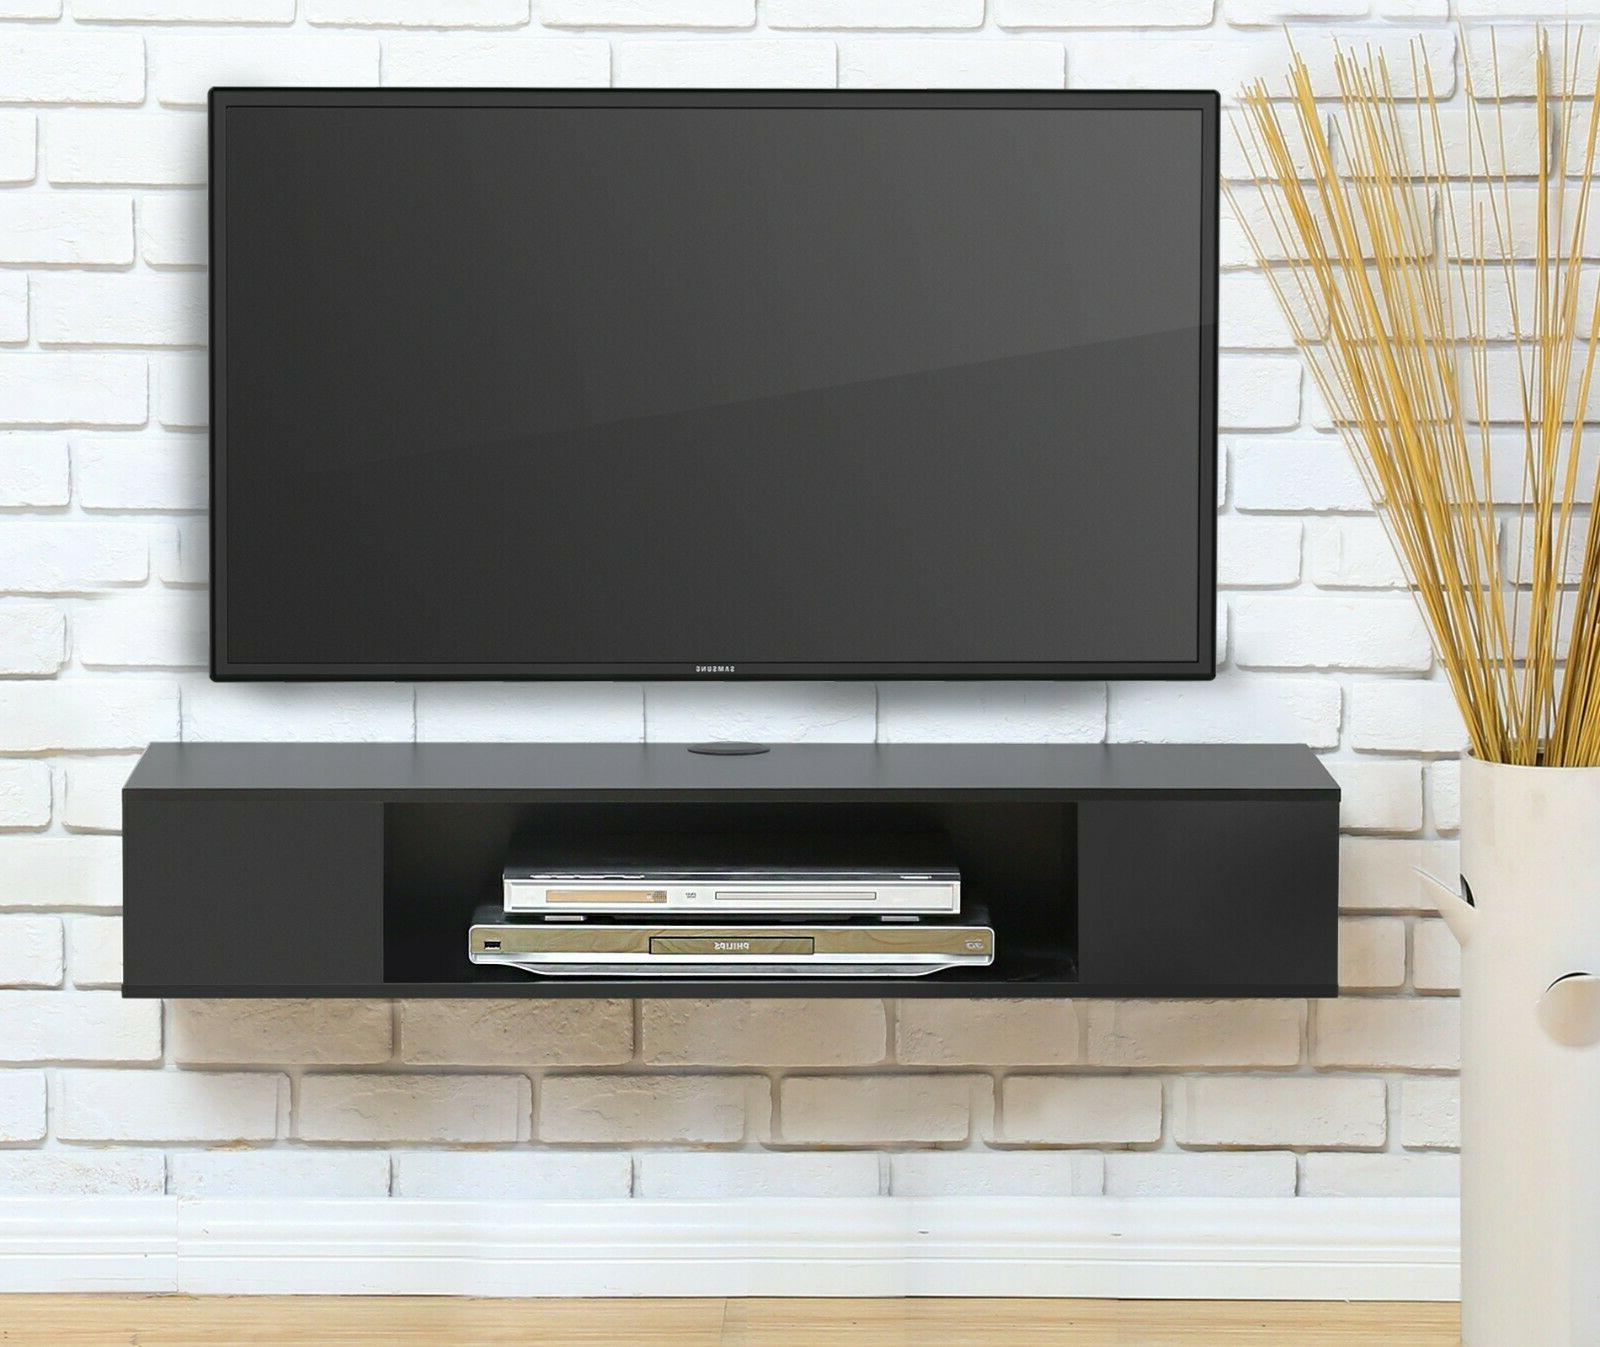 Floating TV Stand, Wall Mounted Shelf,